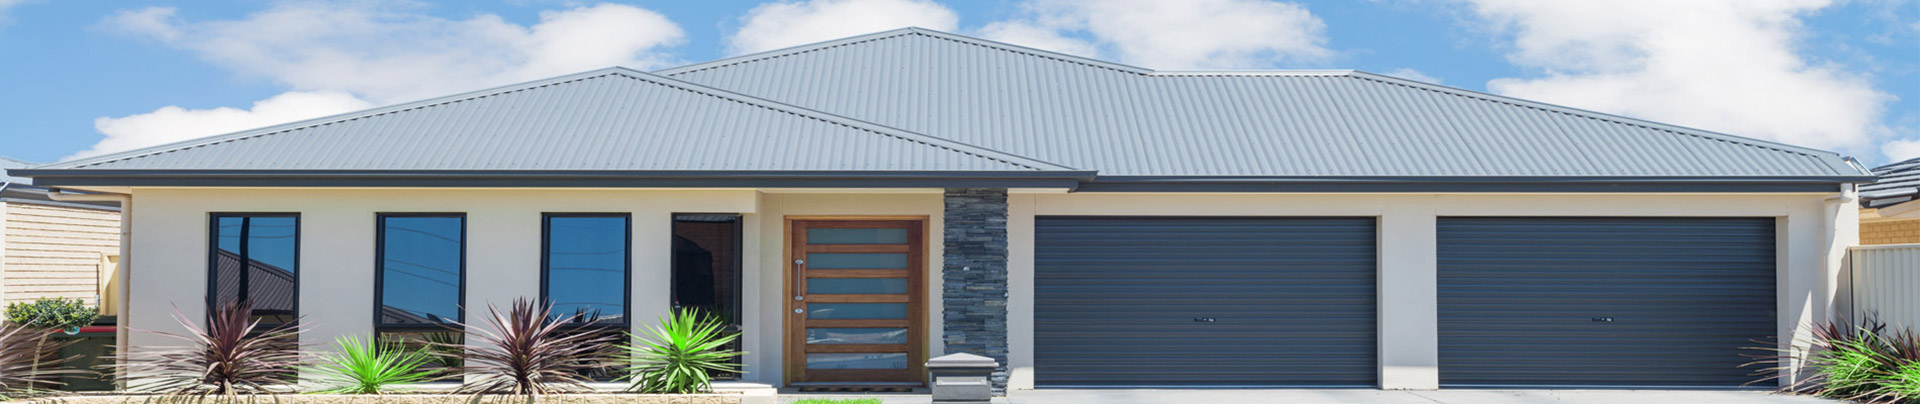 top quality roofing service auckland